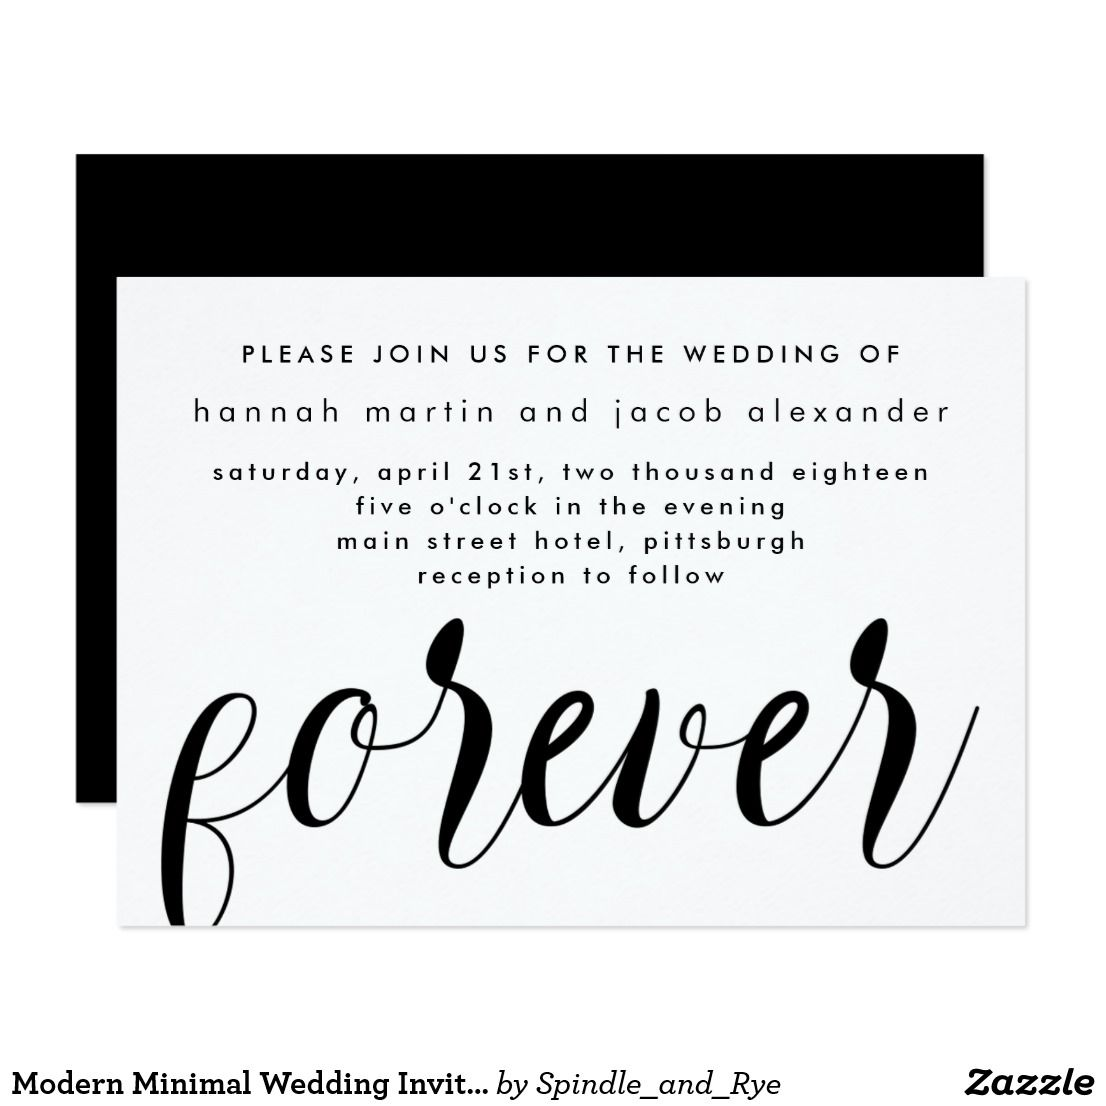 Modern Minimal Wedding Invitation | Wedding Ideas, Favors ...